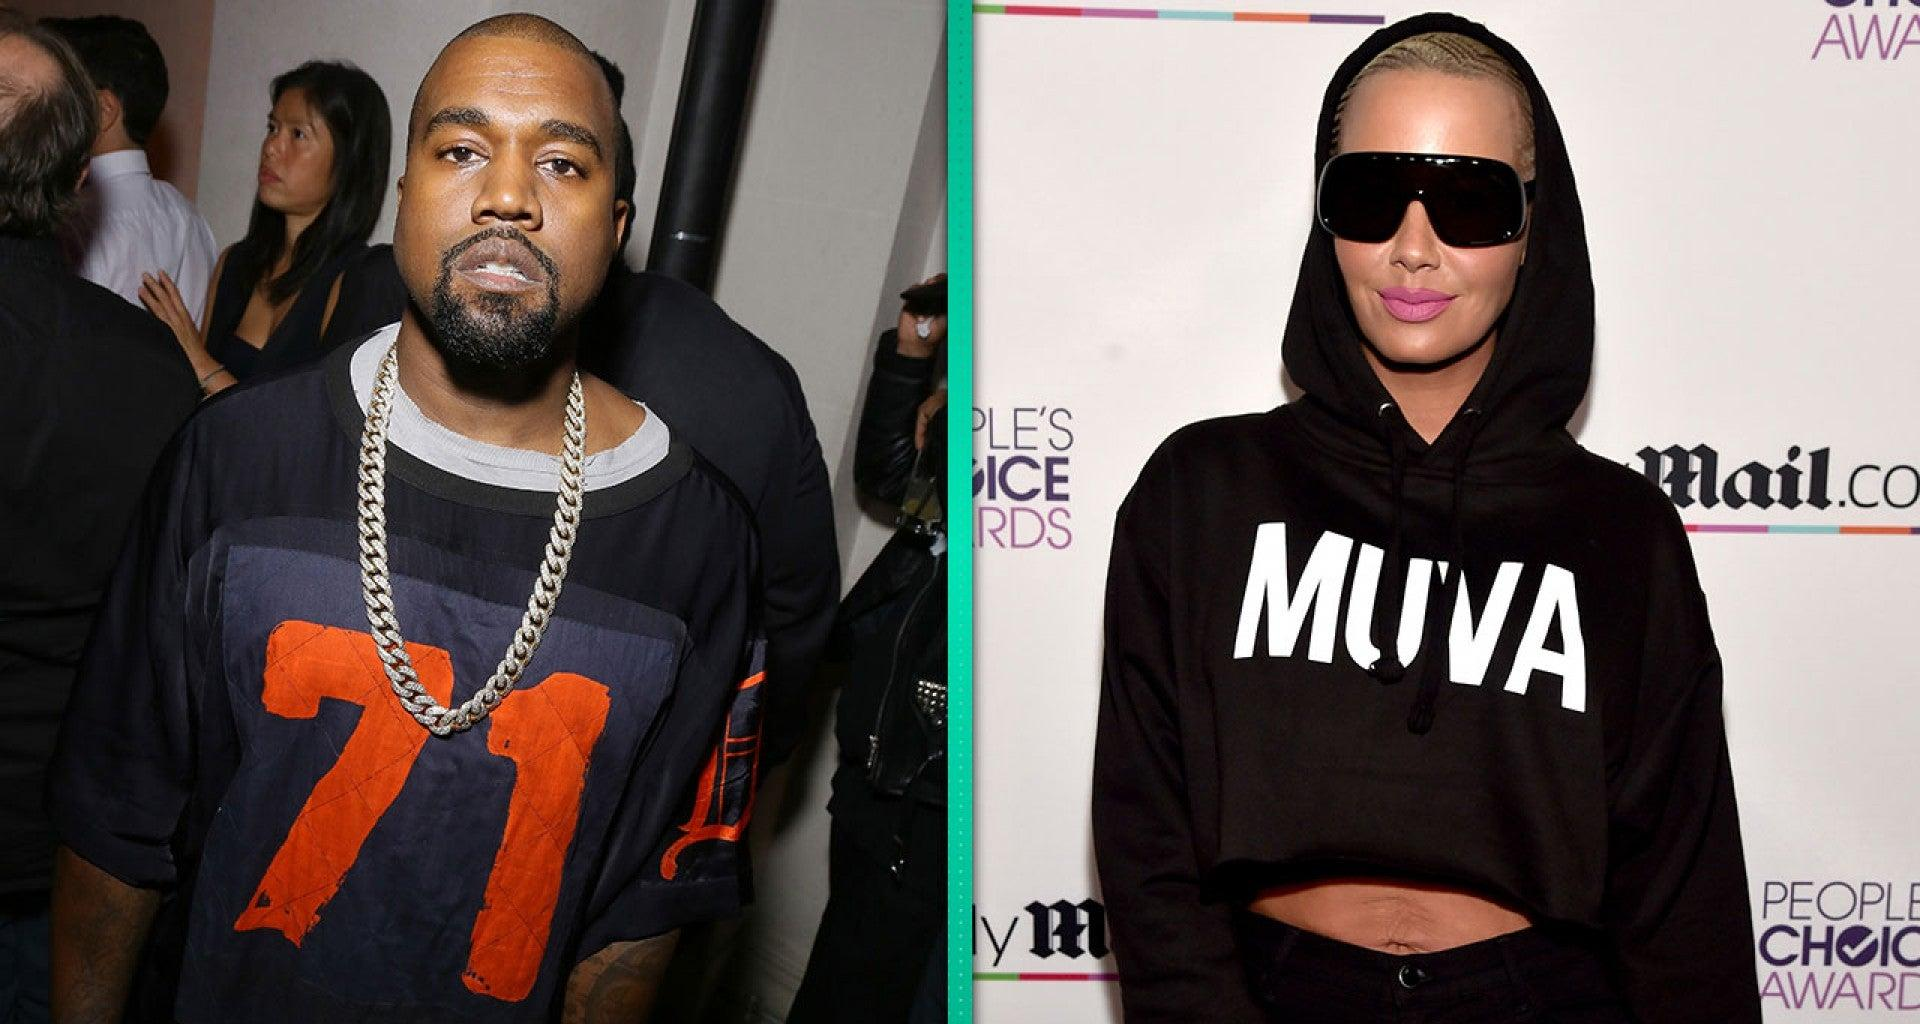 Amber Rose Celebrates Her 37th Birthday - She Also Asks Kanye West To Stop Bullying Her!